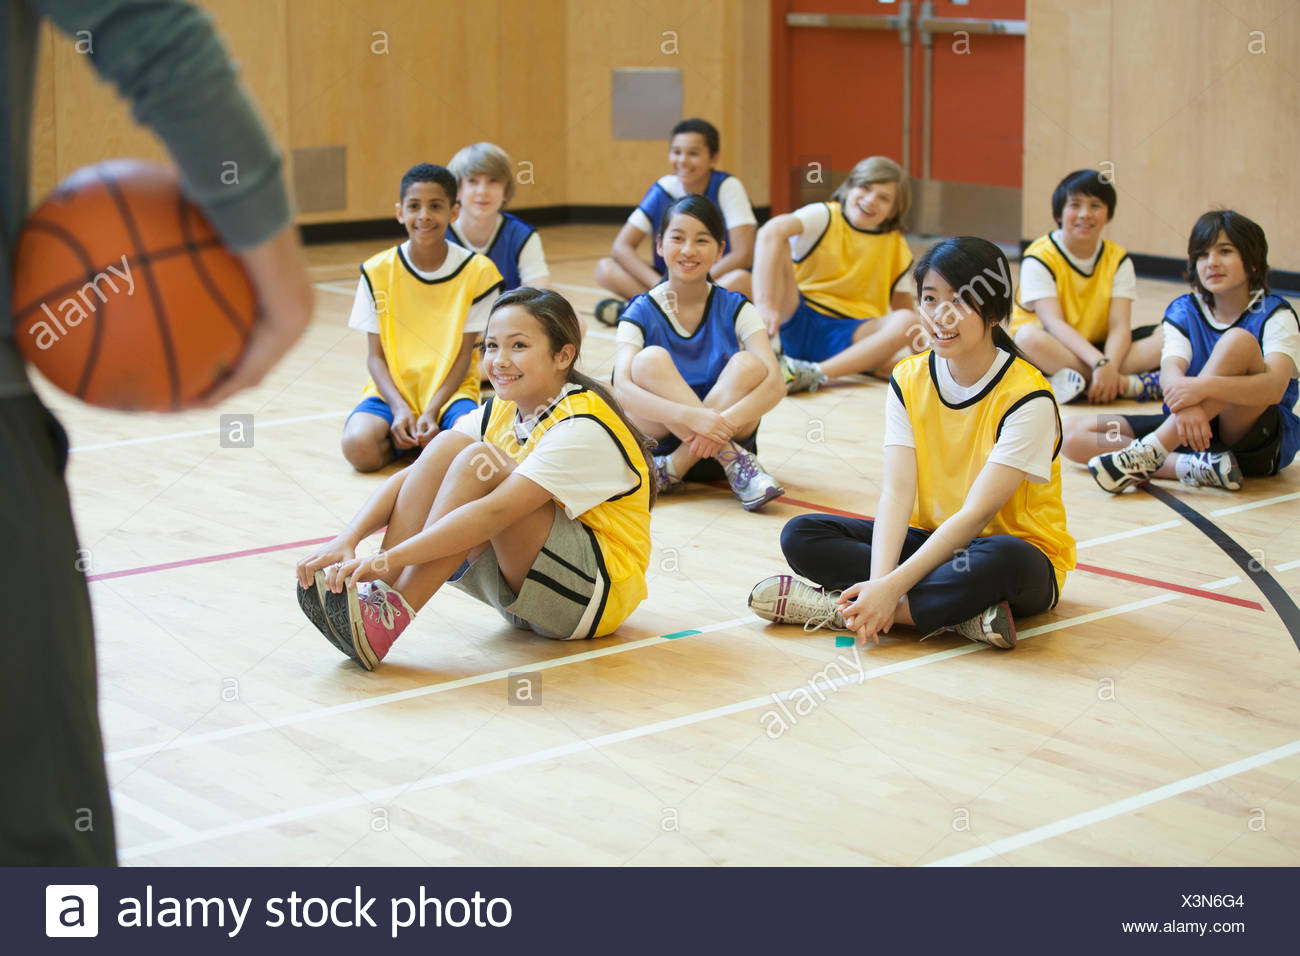 group of middle school students sitting in the gymnasium - Stock Image